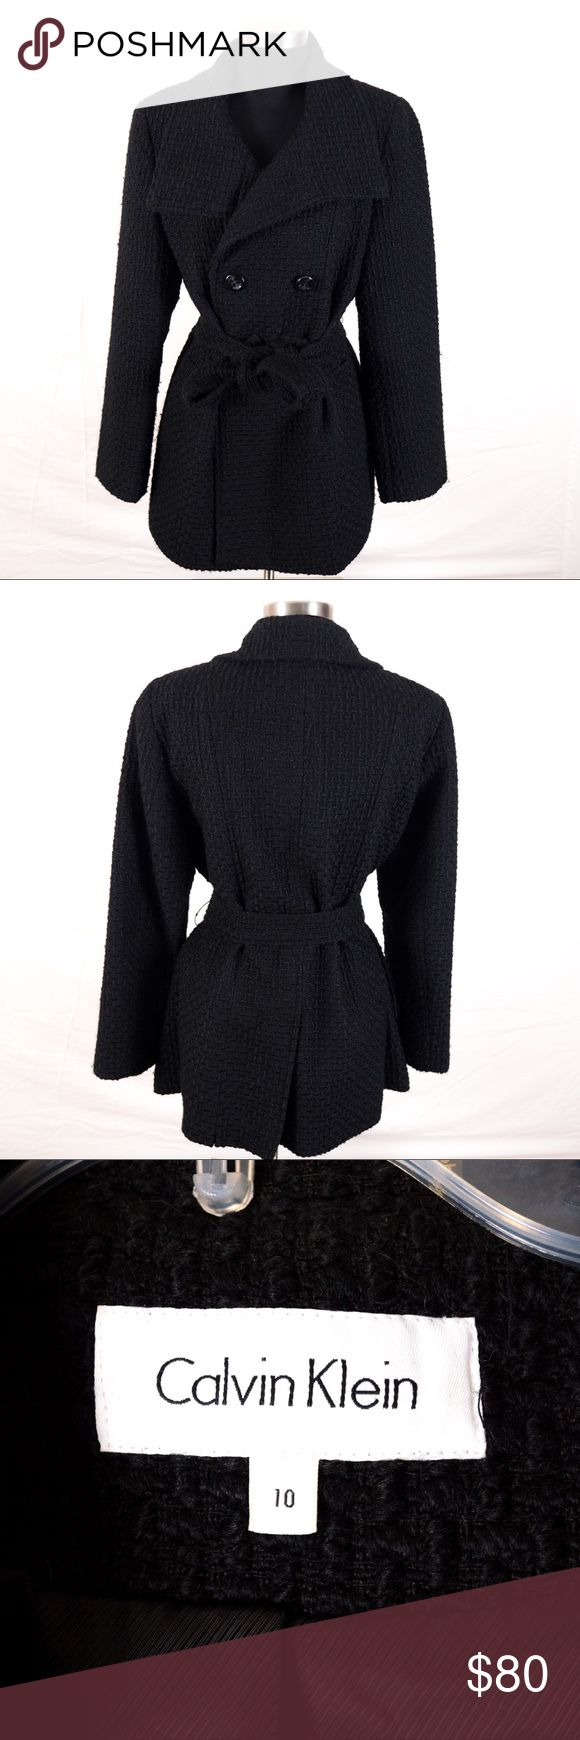 Classic Calvin Klein Black Pea Coat Classic Calvin Klein Black peat coat. Beautiful braided twill detail. Belt adds a cinched waist line detail that is flattering on any figure. Hardly worn and like new! Calvin Klein Jackets & Coats Pea Coats